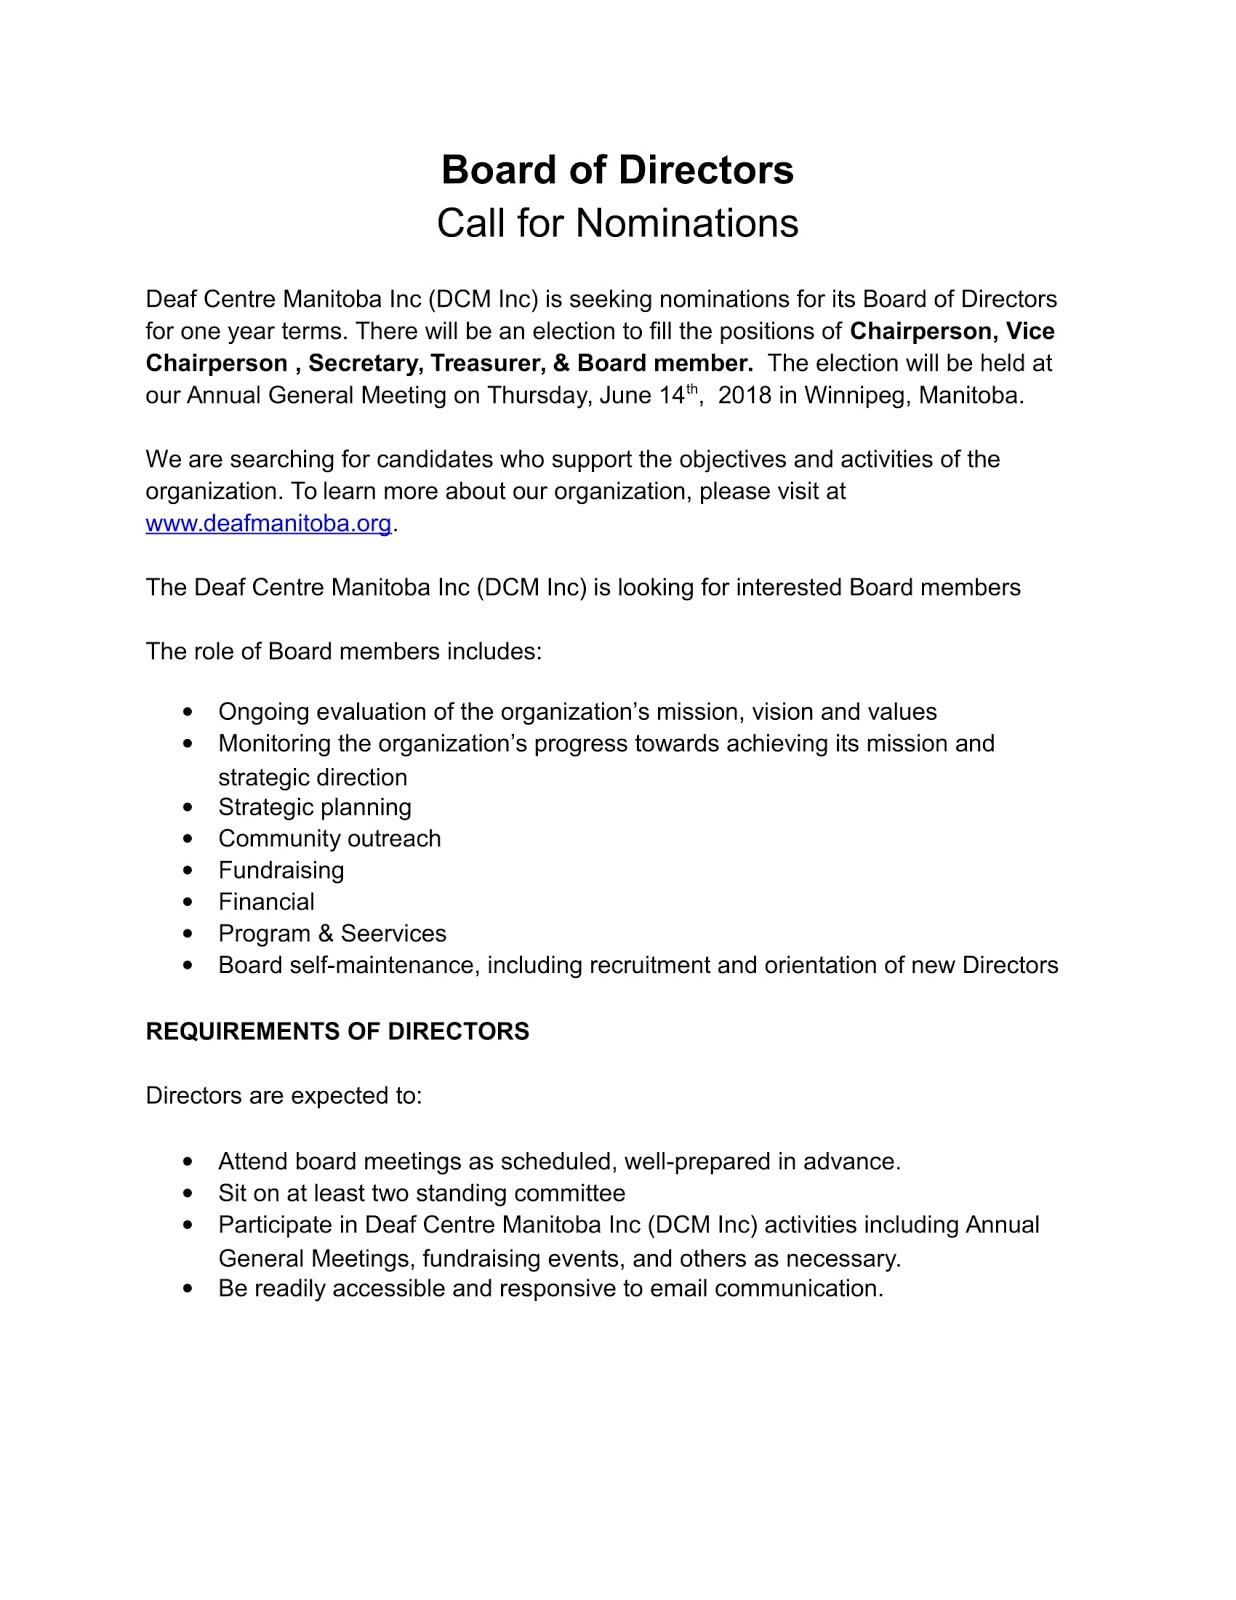 Deaf Centre Manitoba Inc : Call for Nominations for DCM Inc Board of